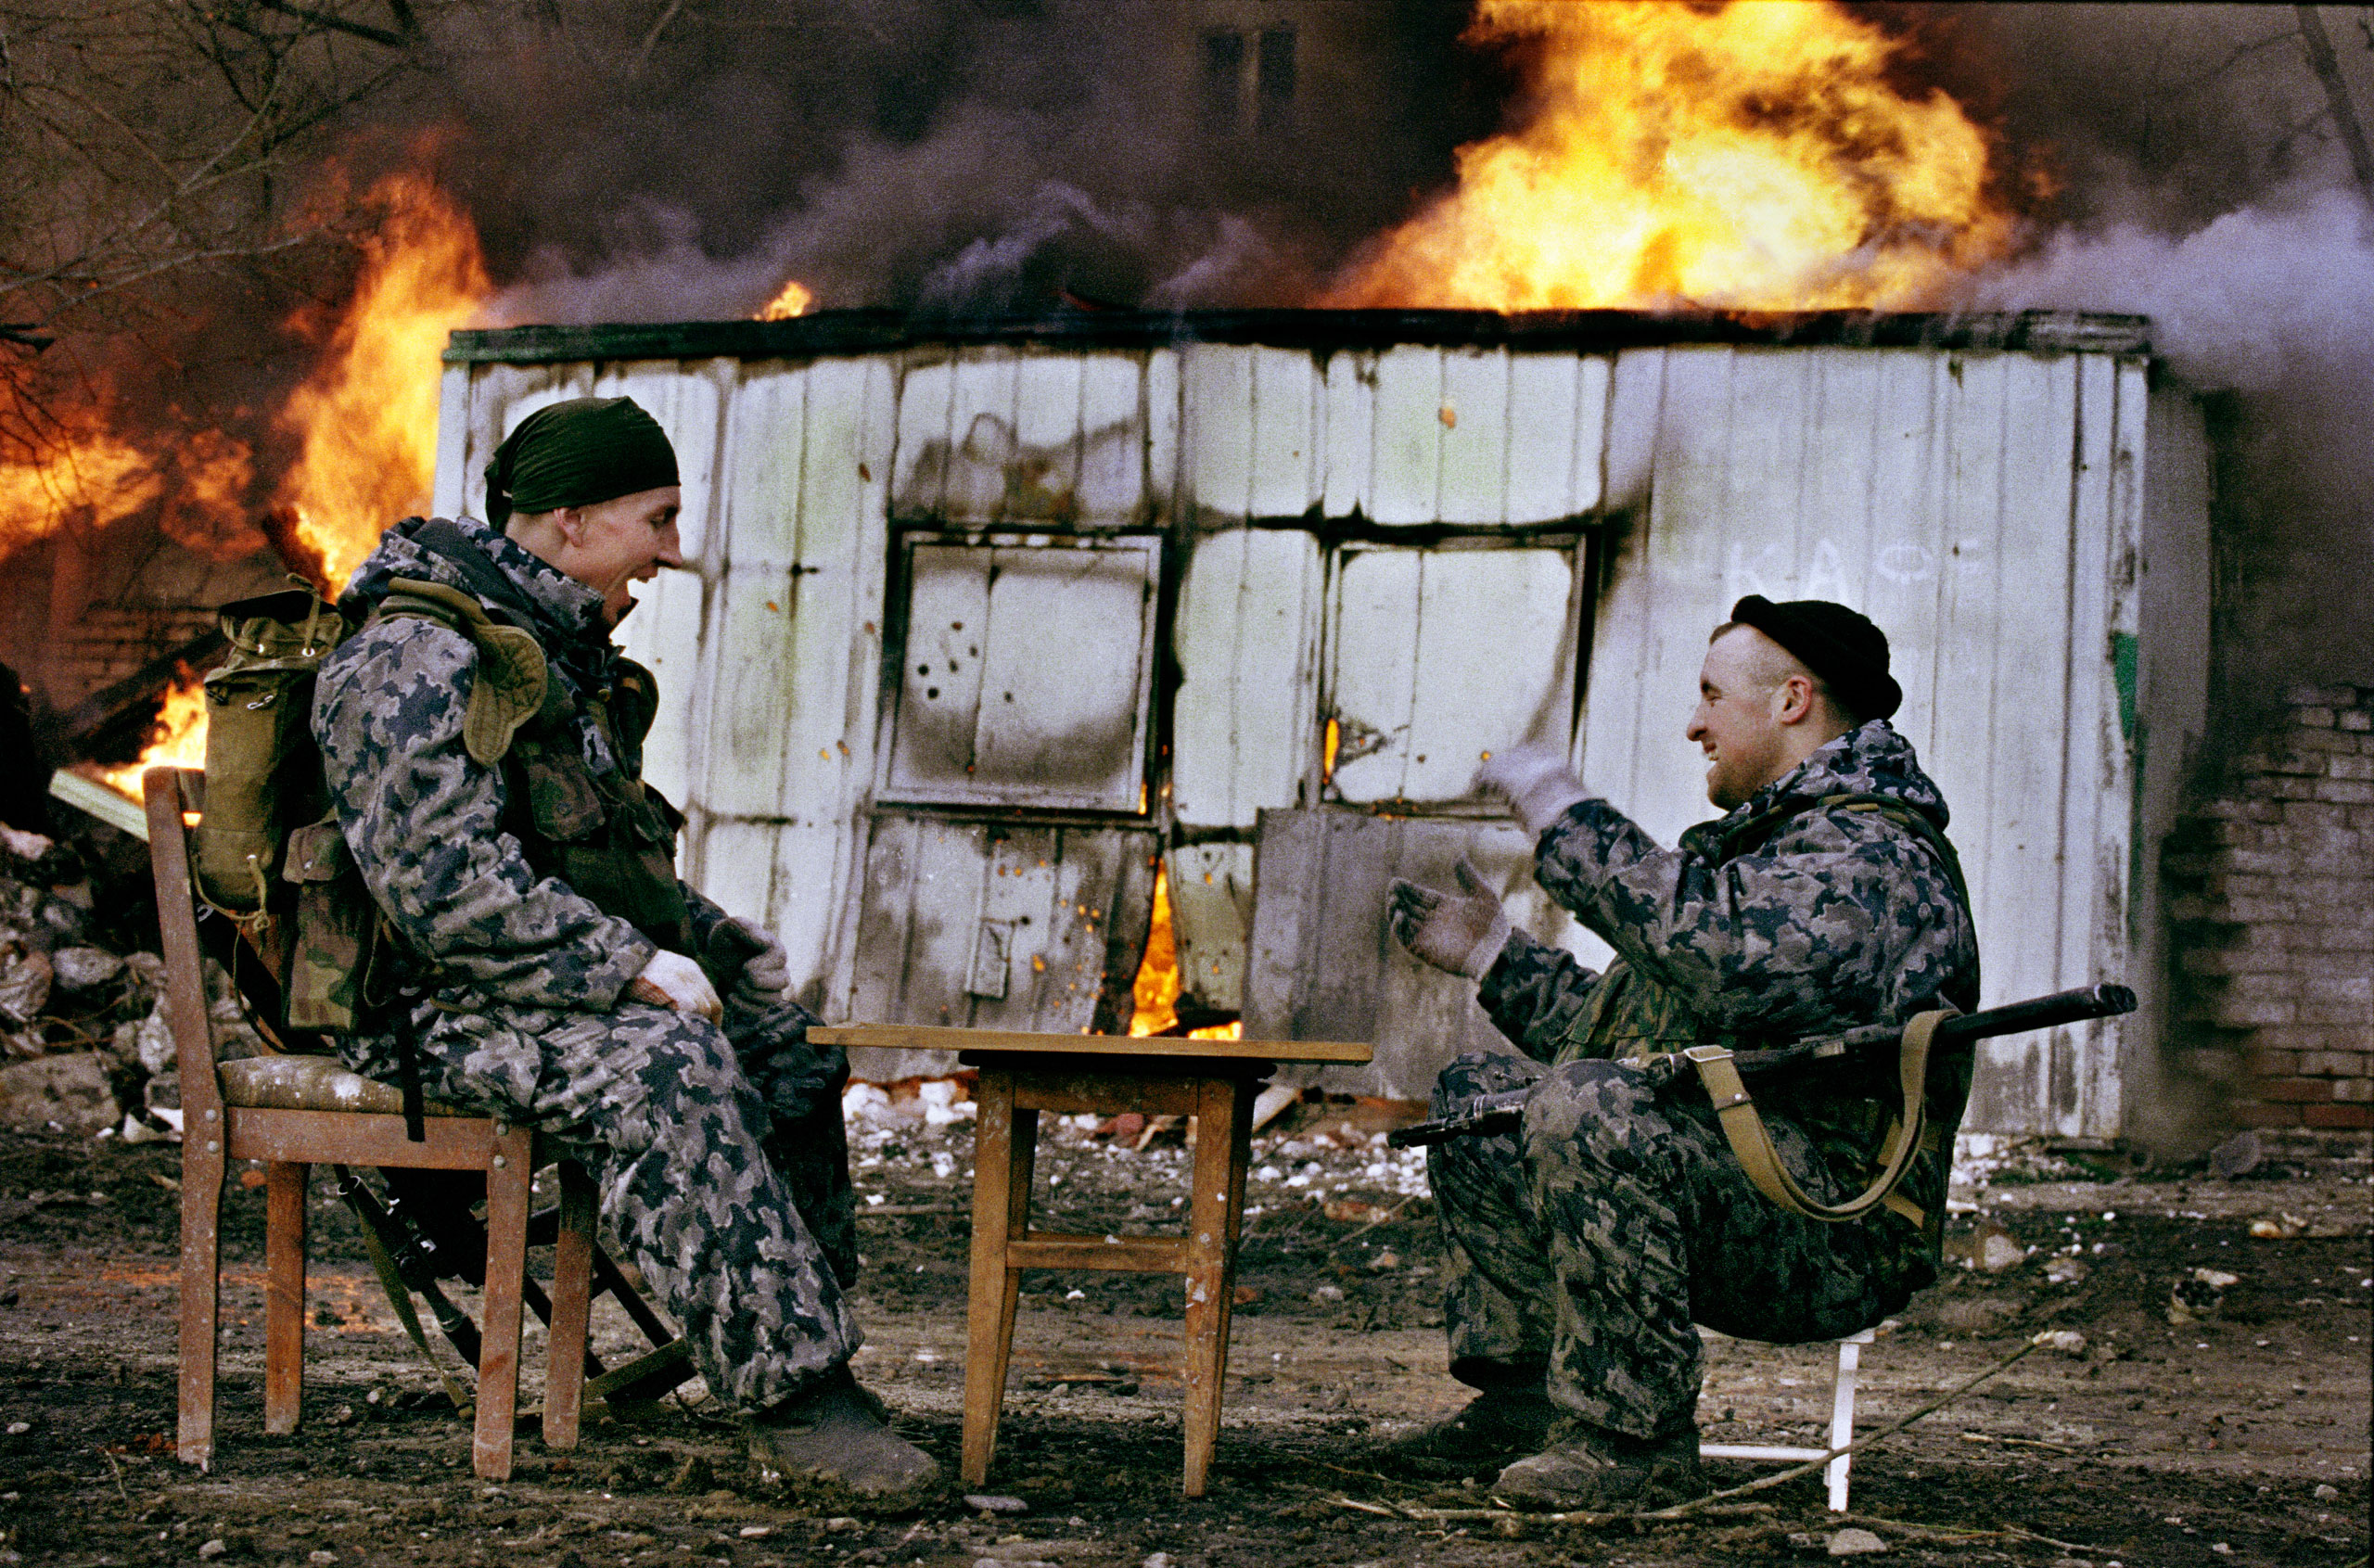 Fighters from the Russian militia special forces play a game in the destroyed city of Grozny, Chechnya, January, 2000.